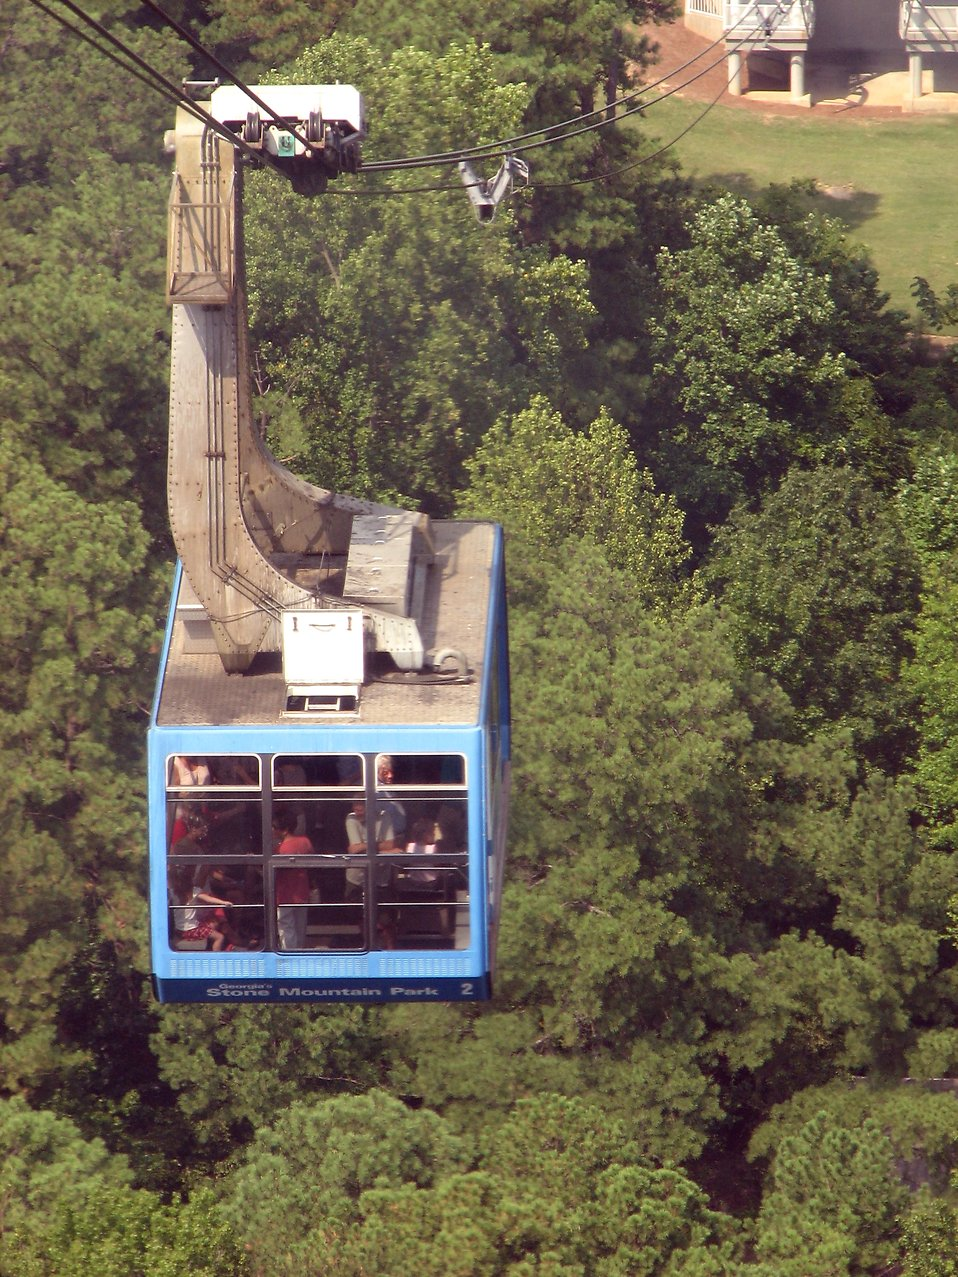 Skyride cable car at Stone Mountain : Free Stock Photo